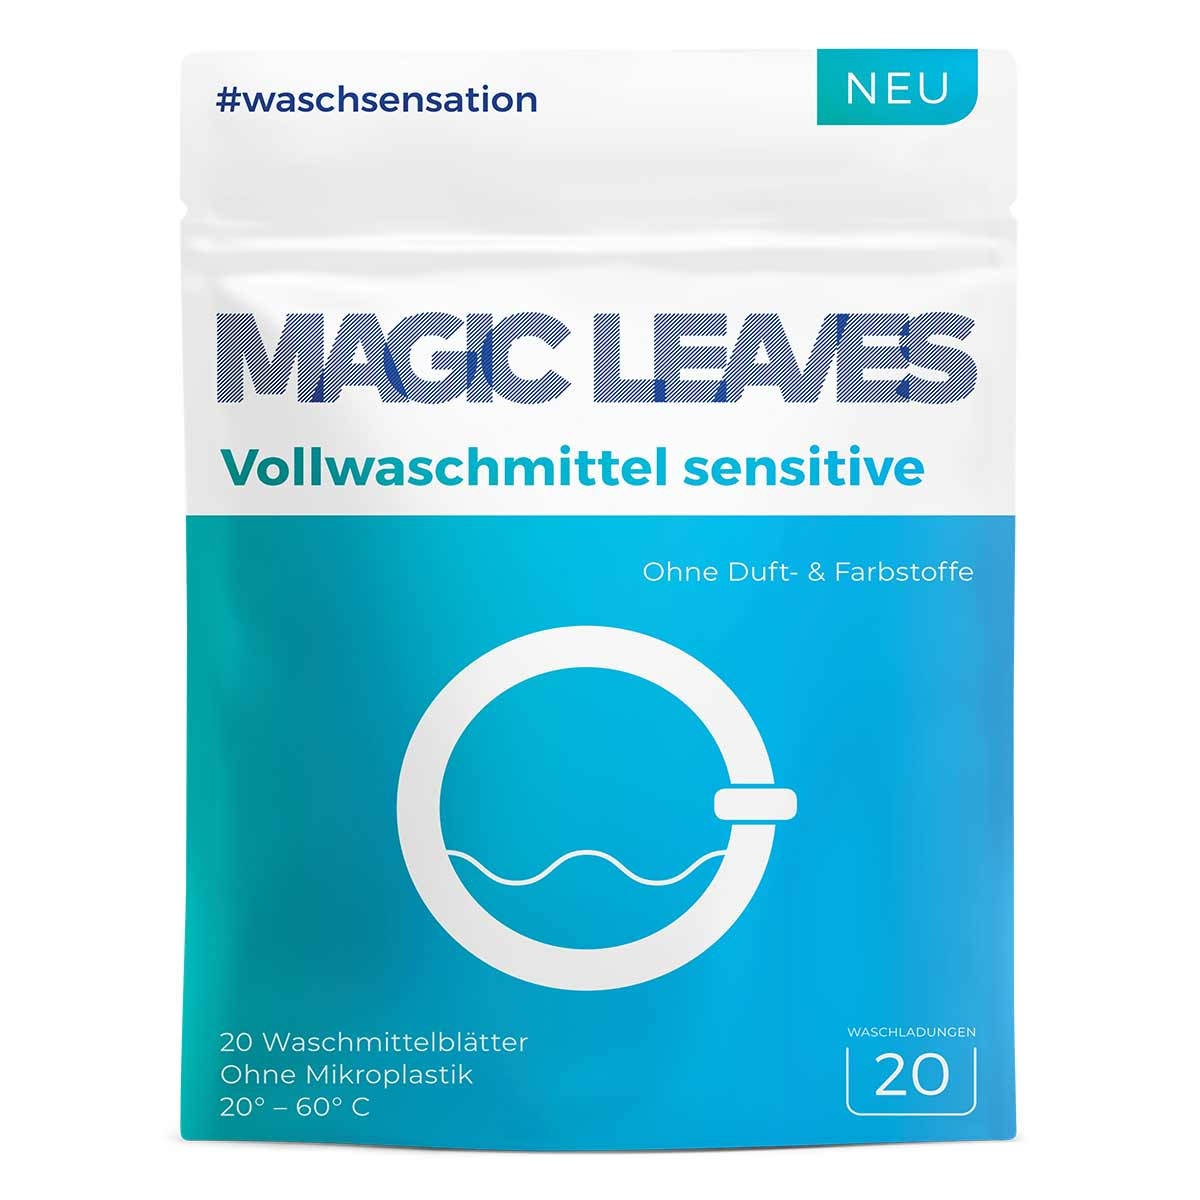 MAGIC LEAVES Vollwaschmittel sensitive Revoluce v pračce! 20 dávek